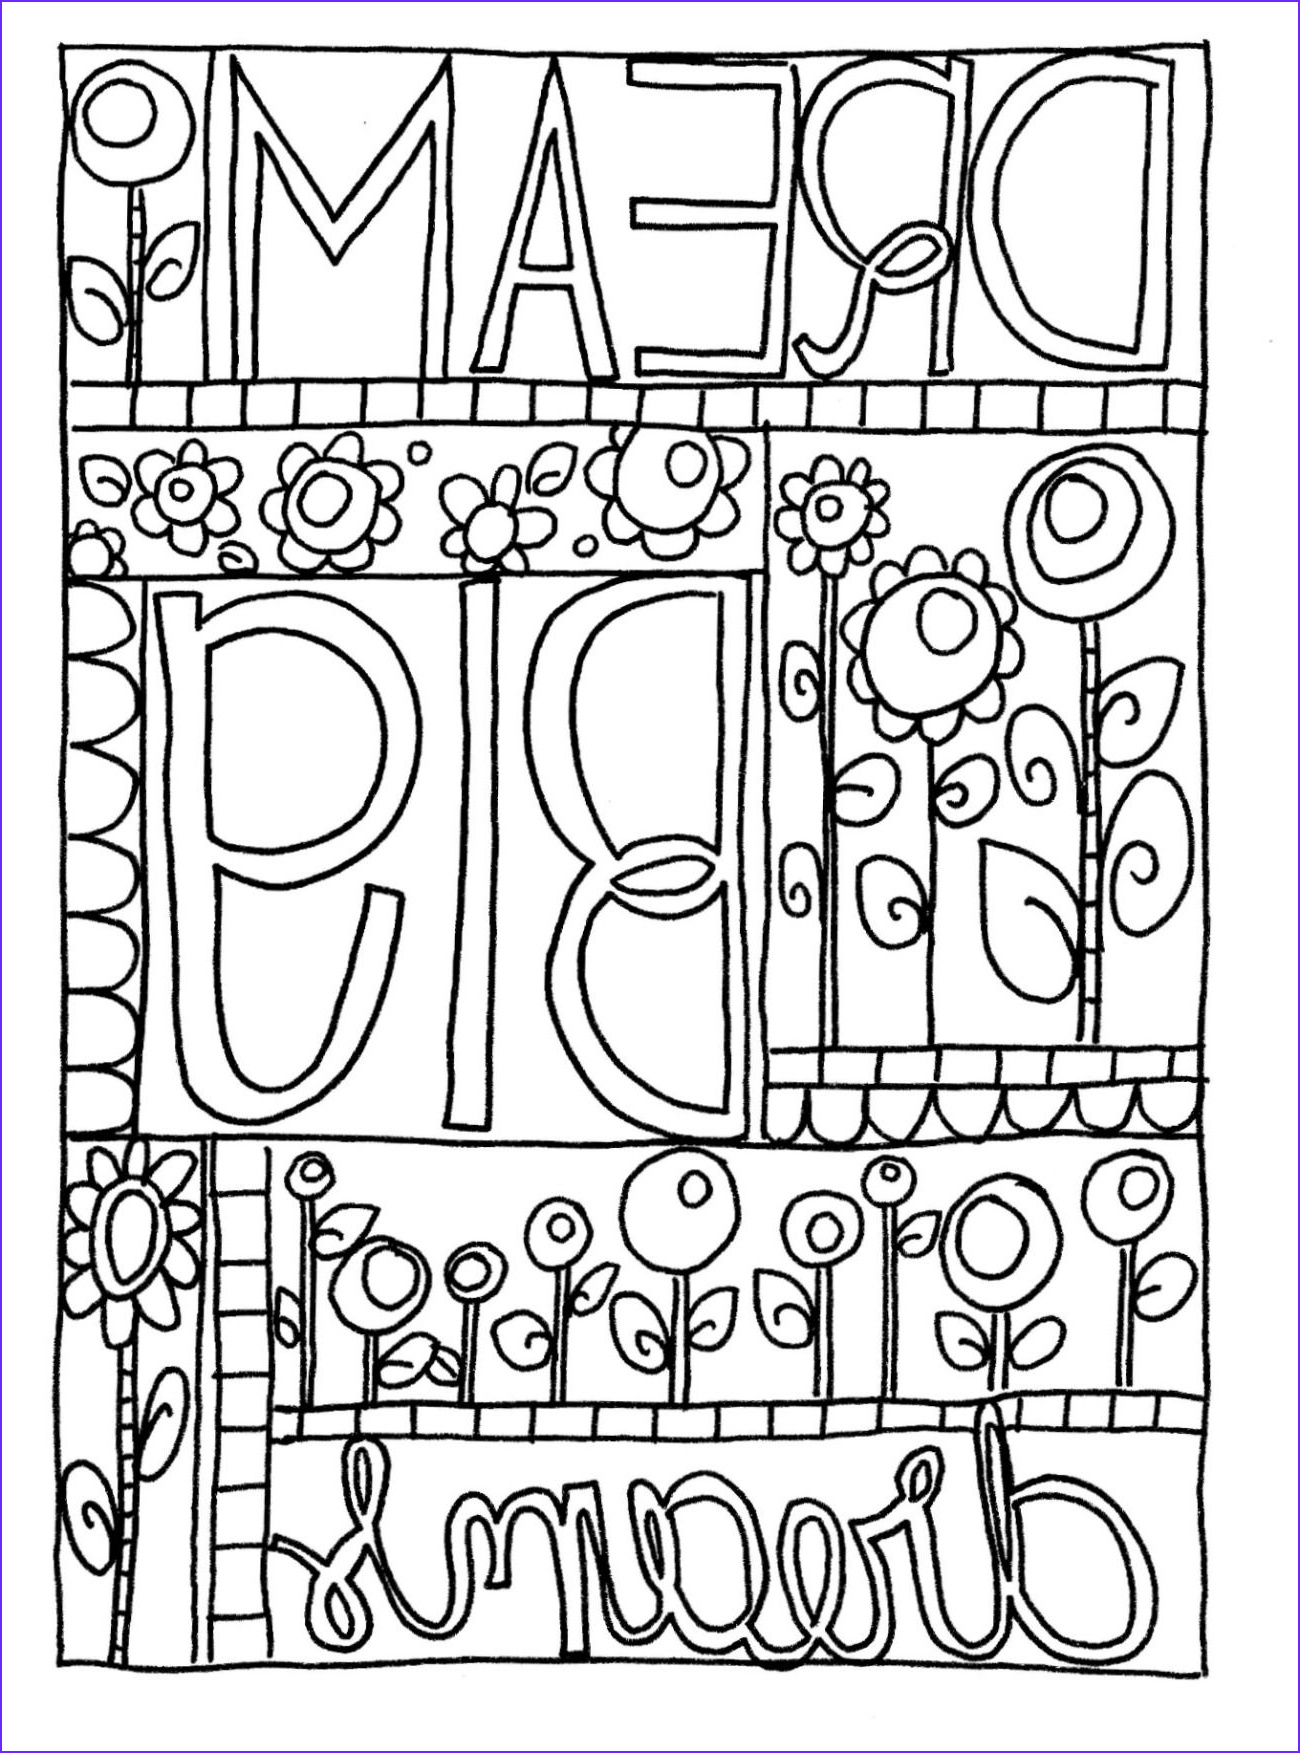 Doodle Coloring Book Awesome Photos Doodle Coloring Pages Best Coloring Pages for Kids